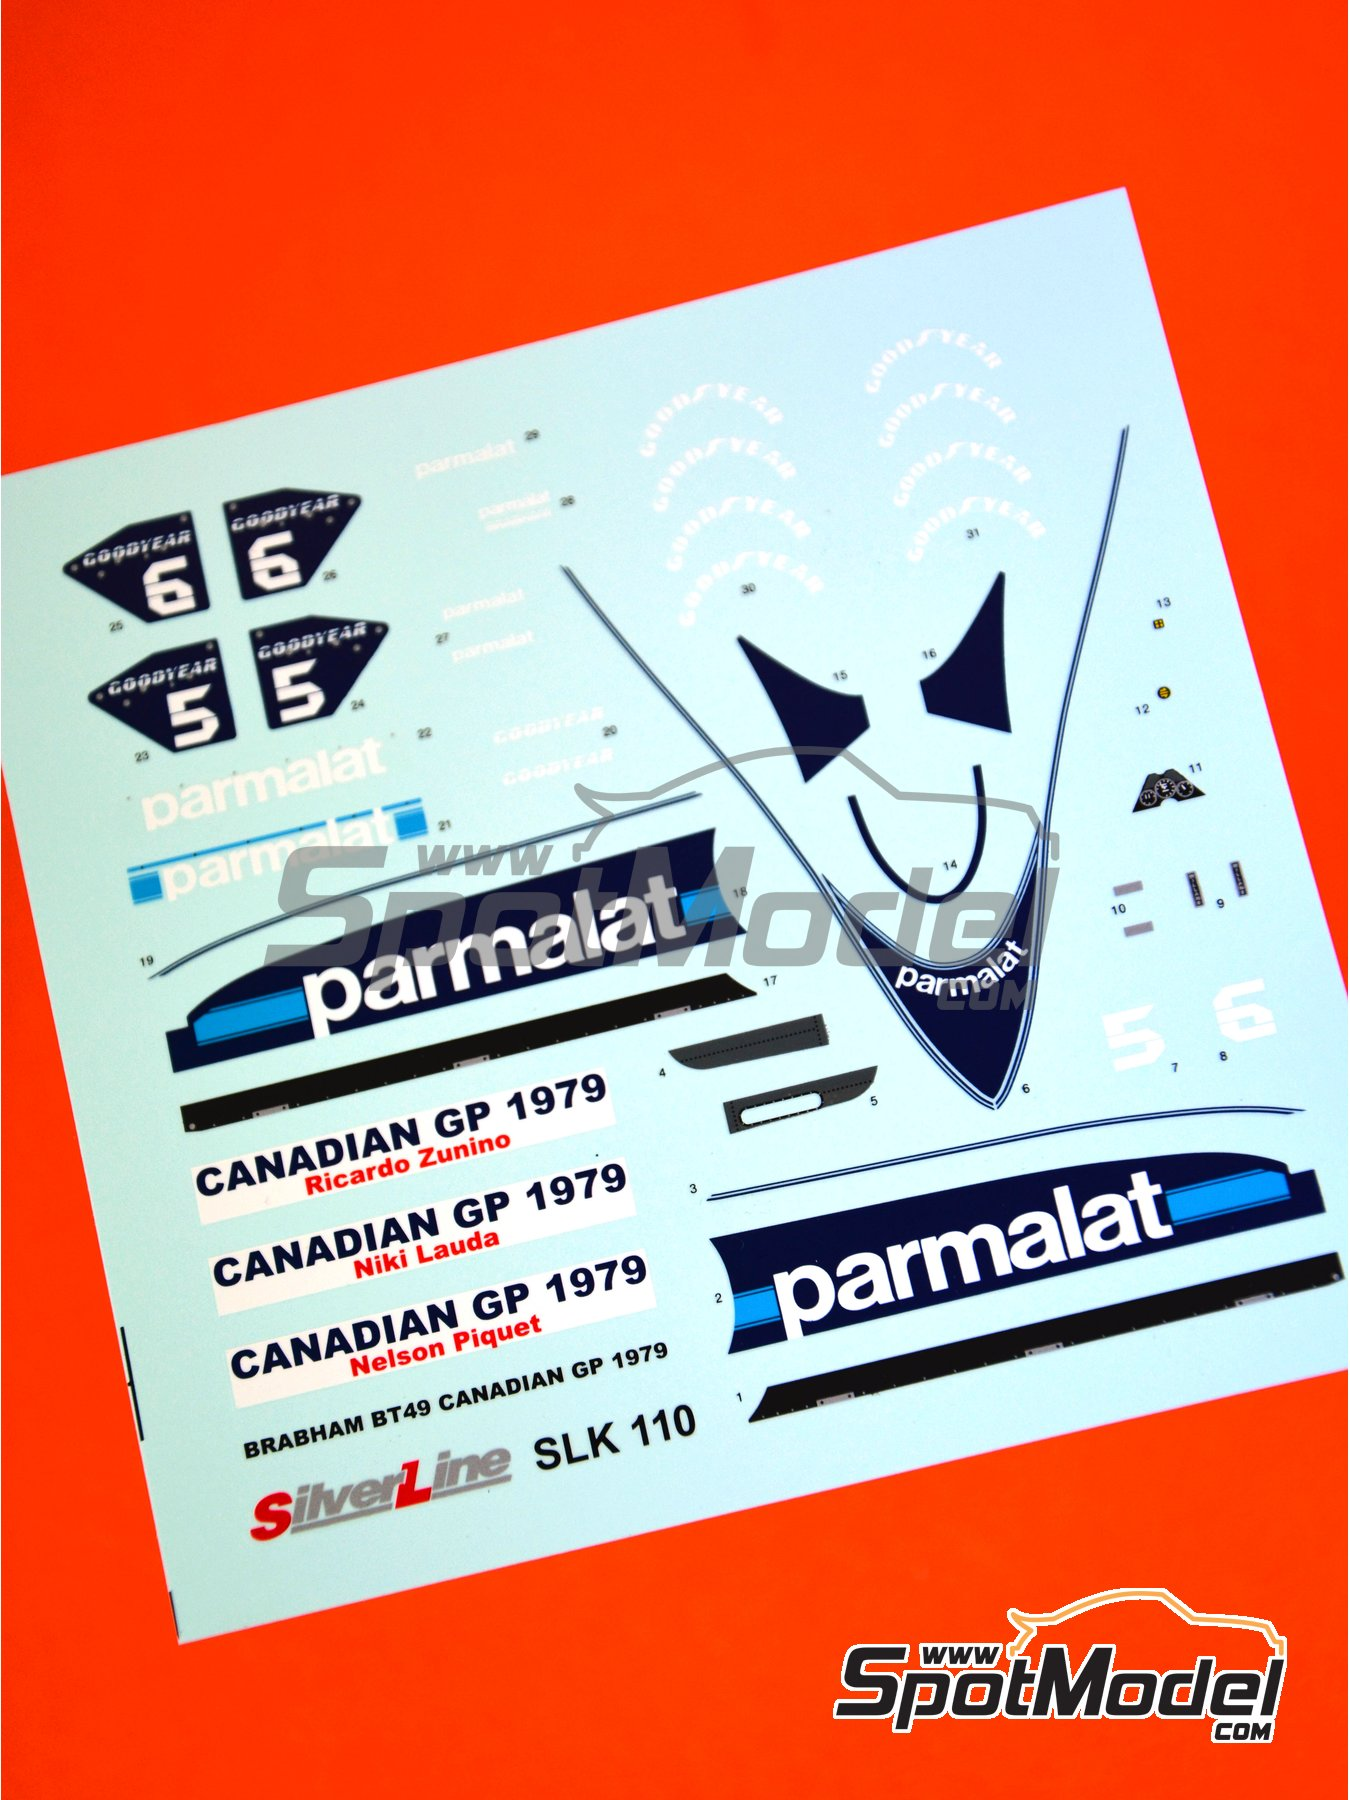 Brabham Ford BT49 Parmalat - Canadian Formula 1 Grand Prix 1979 | Marking / livery in 1/43 scale manufactured by Tameo Kits (ref. DK-SLK110) image